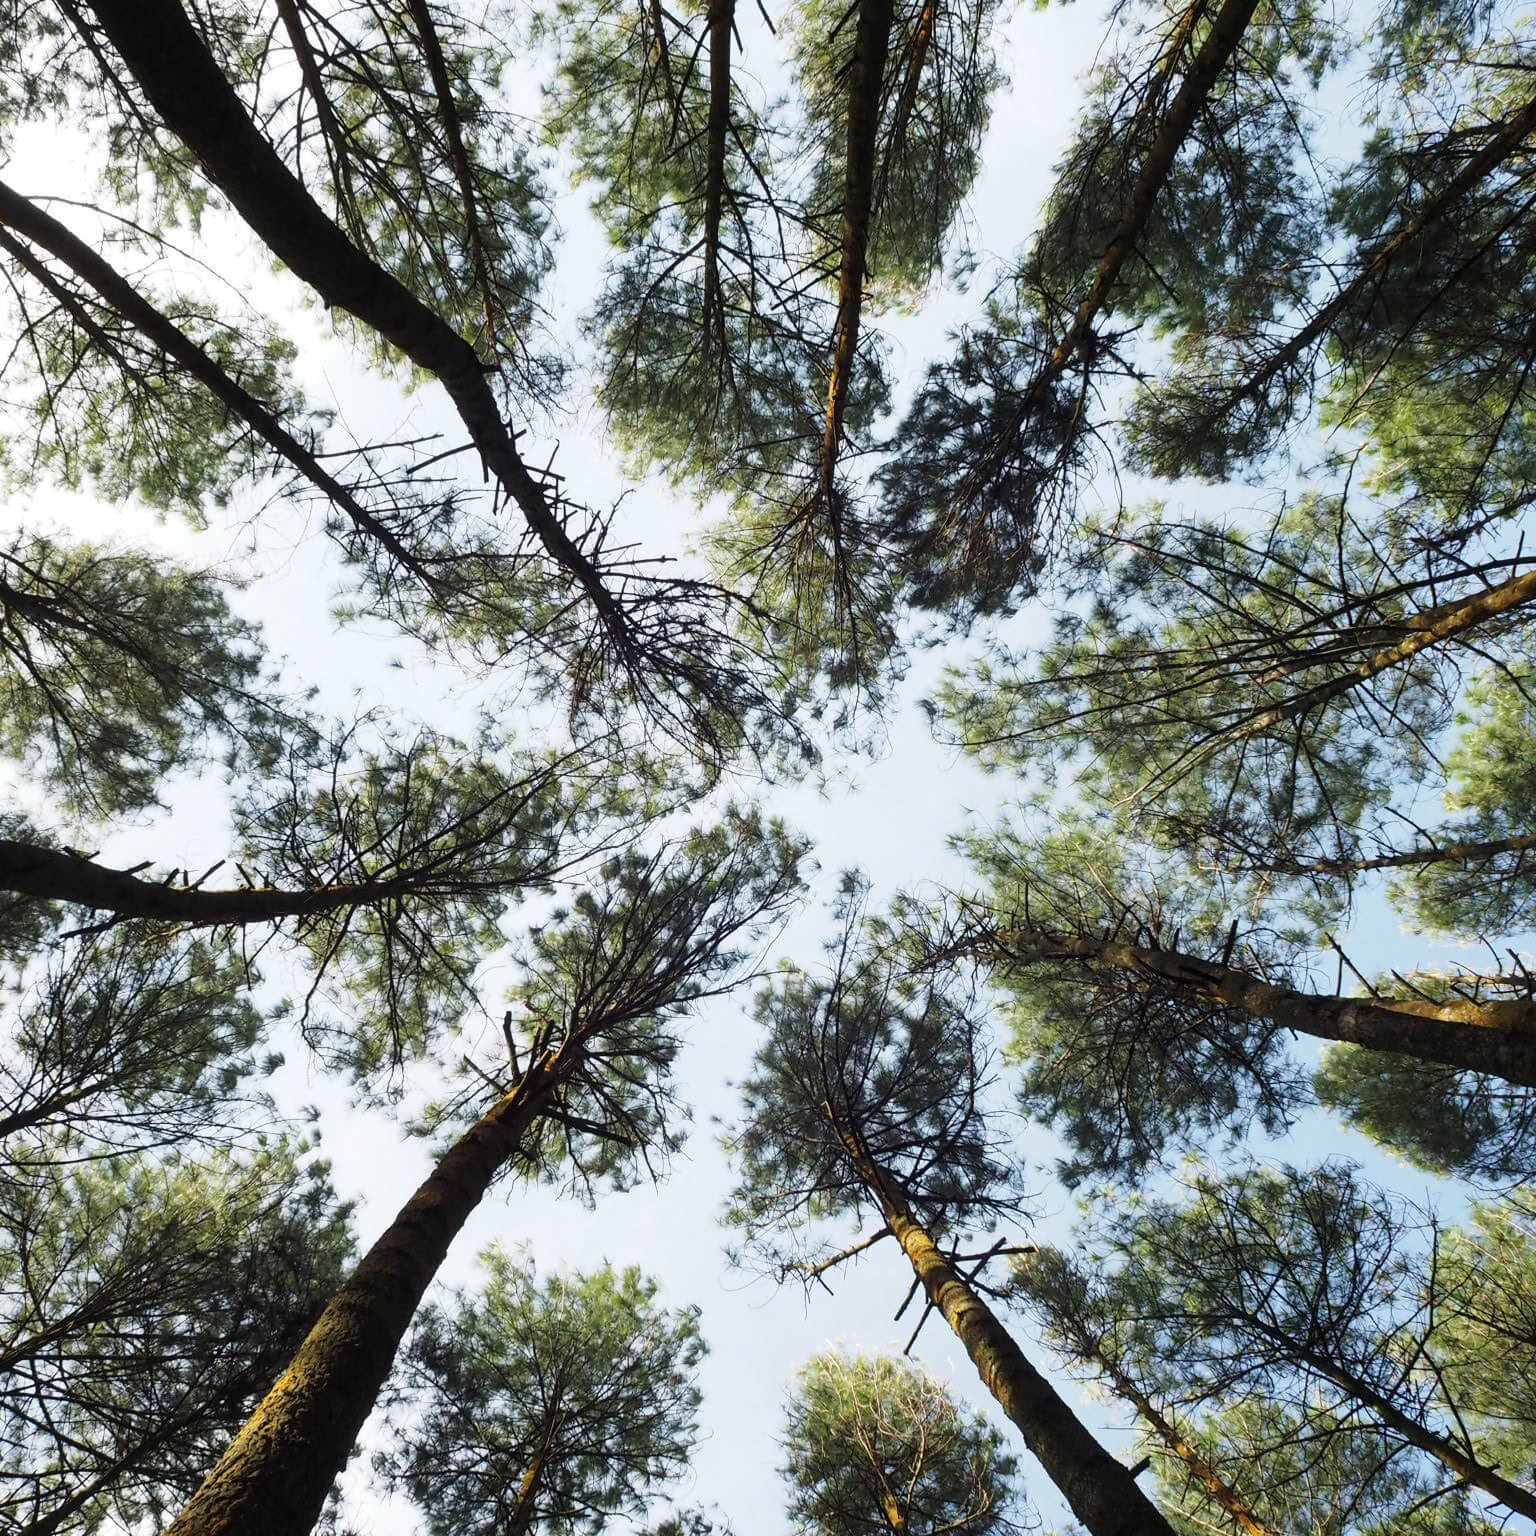 Looking at trees from underneath